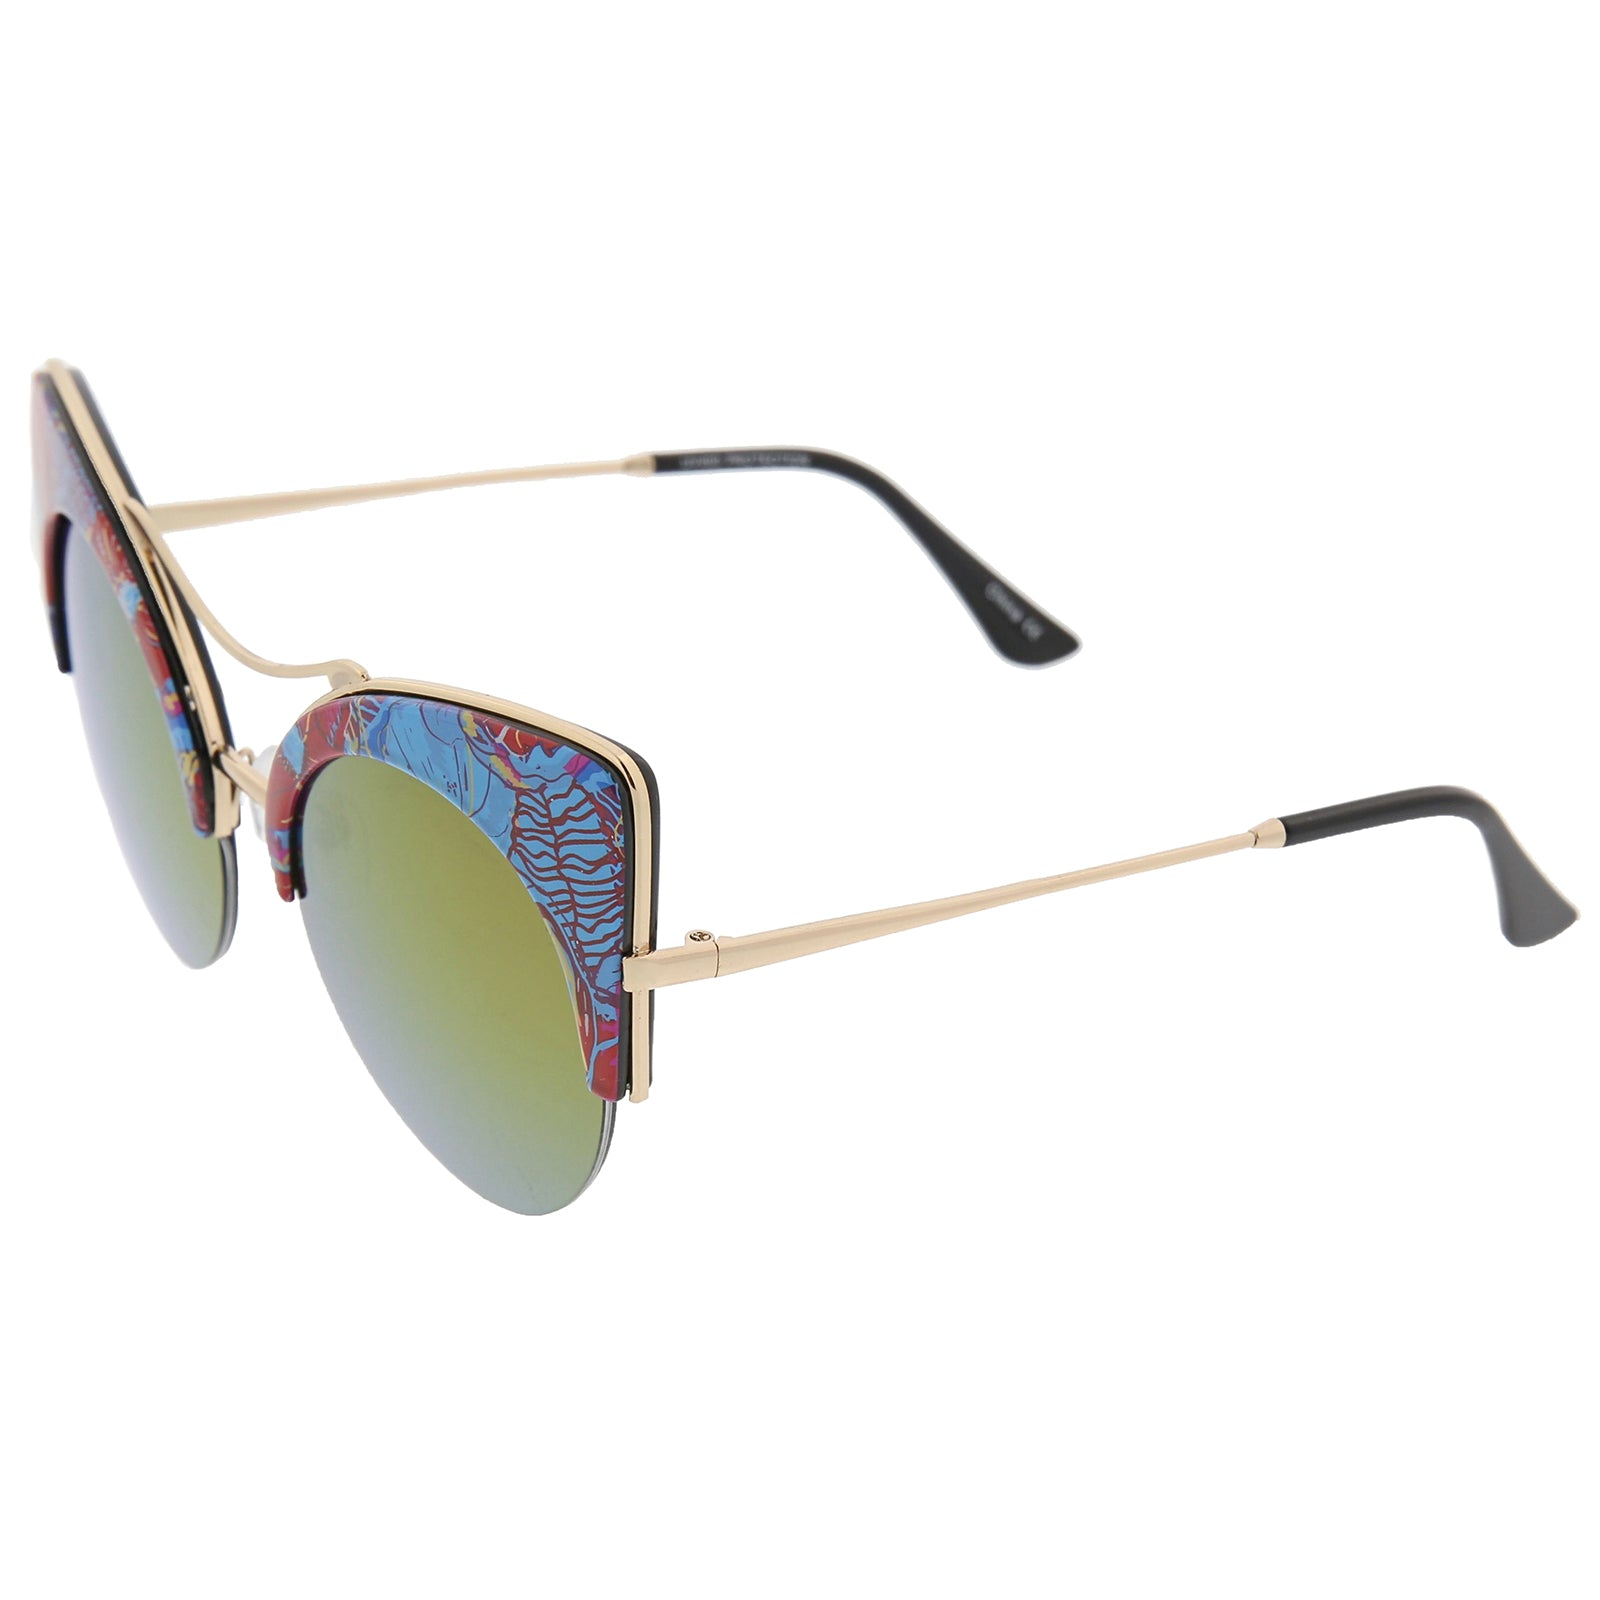 Women's Flat Lens Floral Print Semi-Rimless Round Cat Eye Sunglasses 52mm - sunglass.la - 3